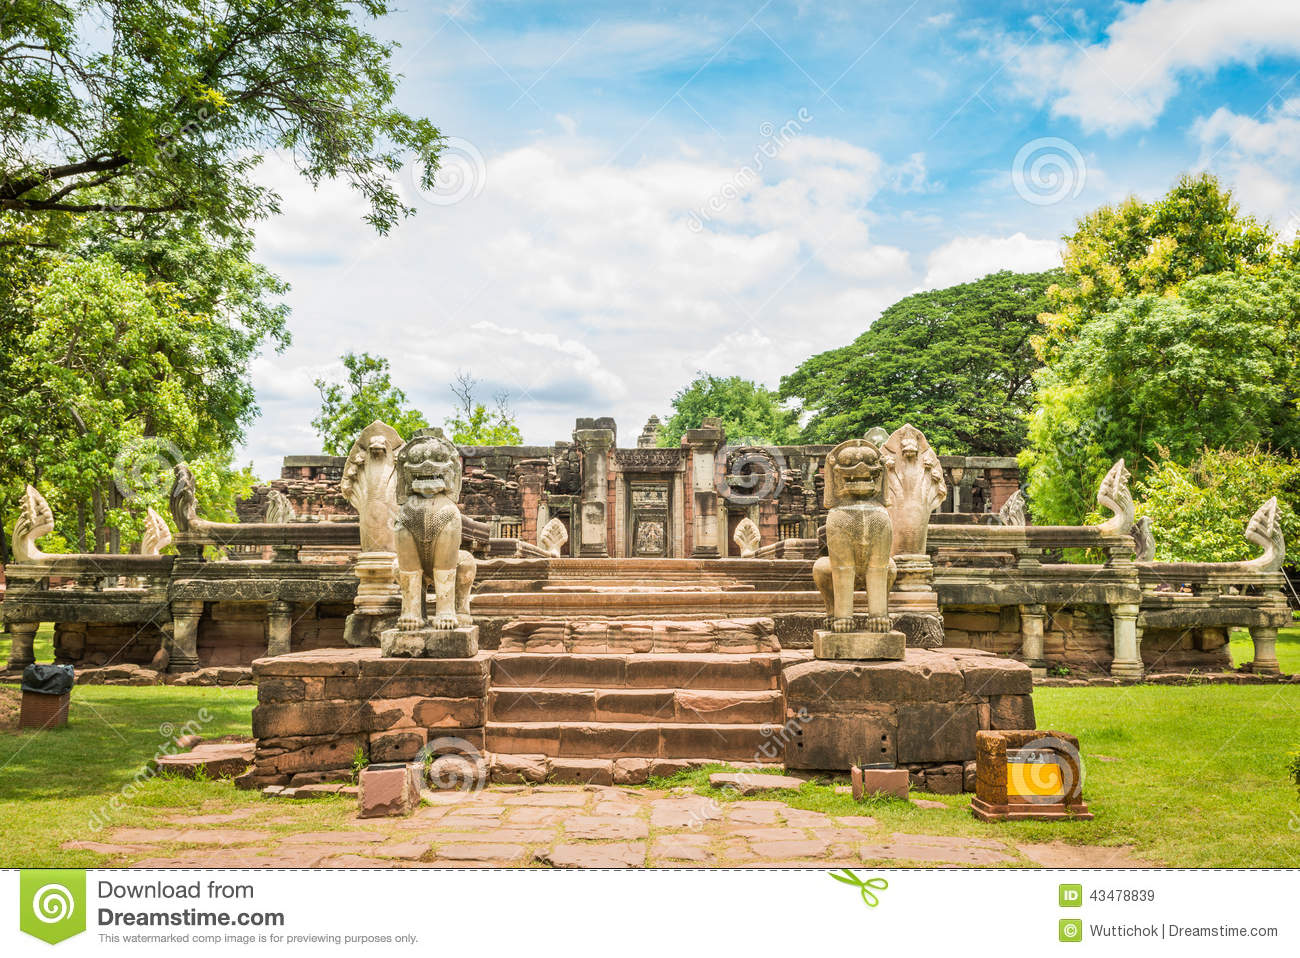 nakhon ratchasima province Secret art garden is located in nakhon ratchasima province plan to see secret art garden and other attractions that appeal to you using our mu si online travel route planner.